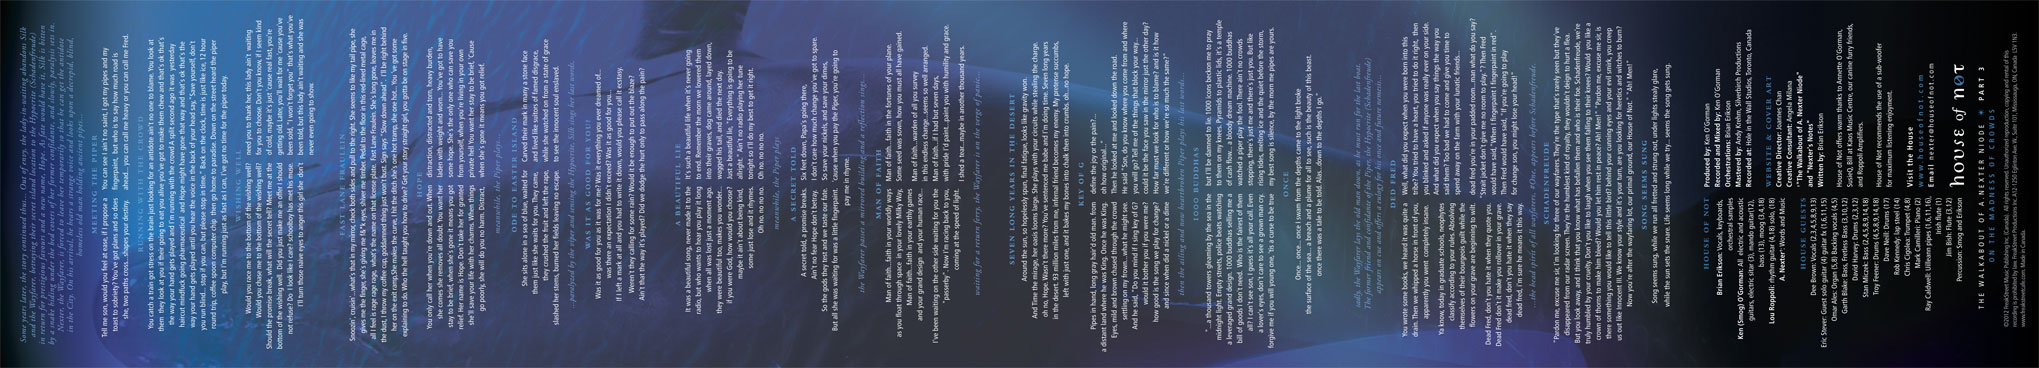 On The Madness of Crowds Lyrics Insert